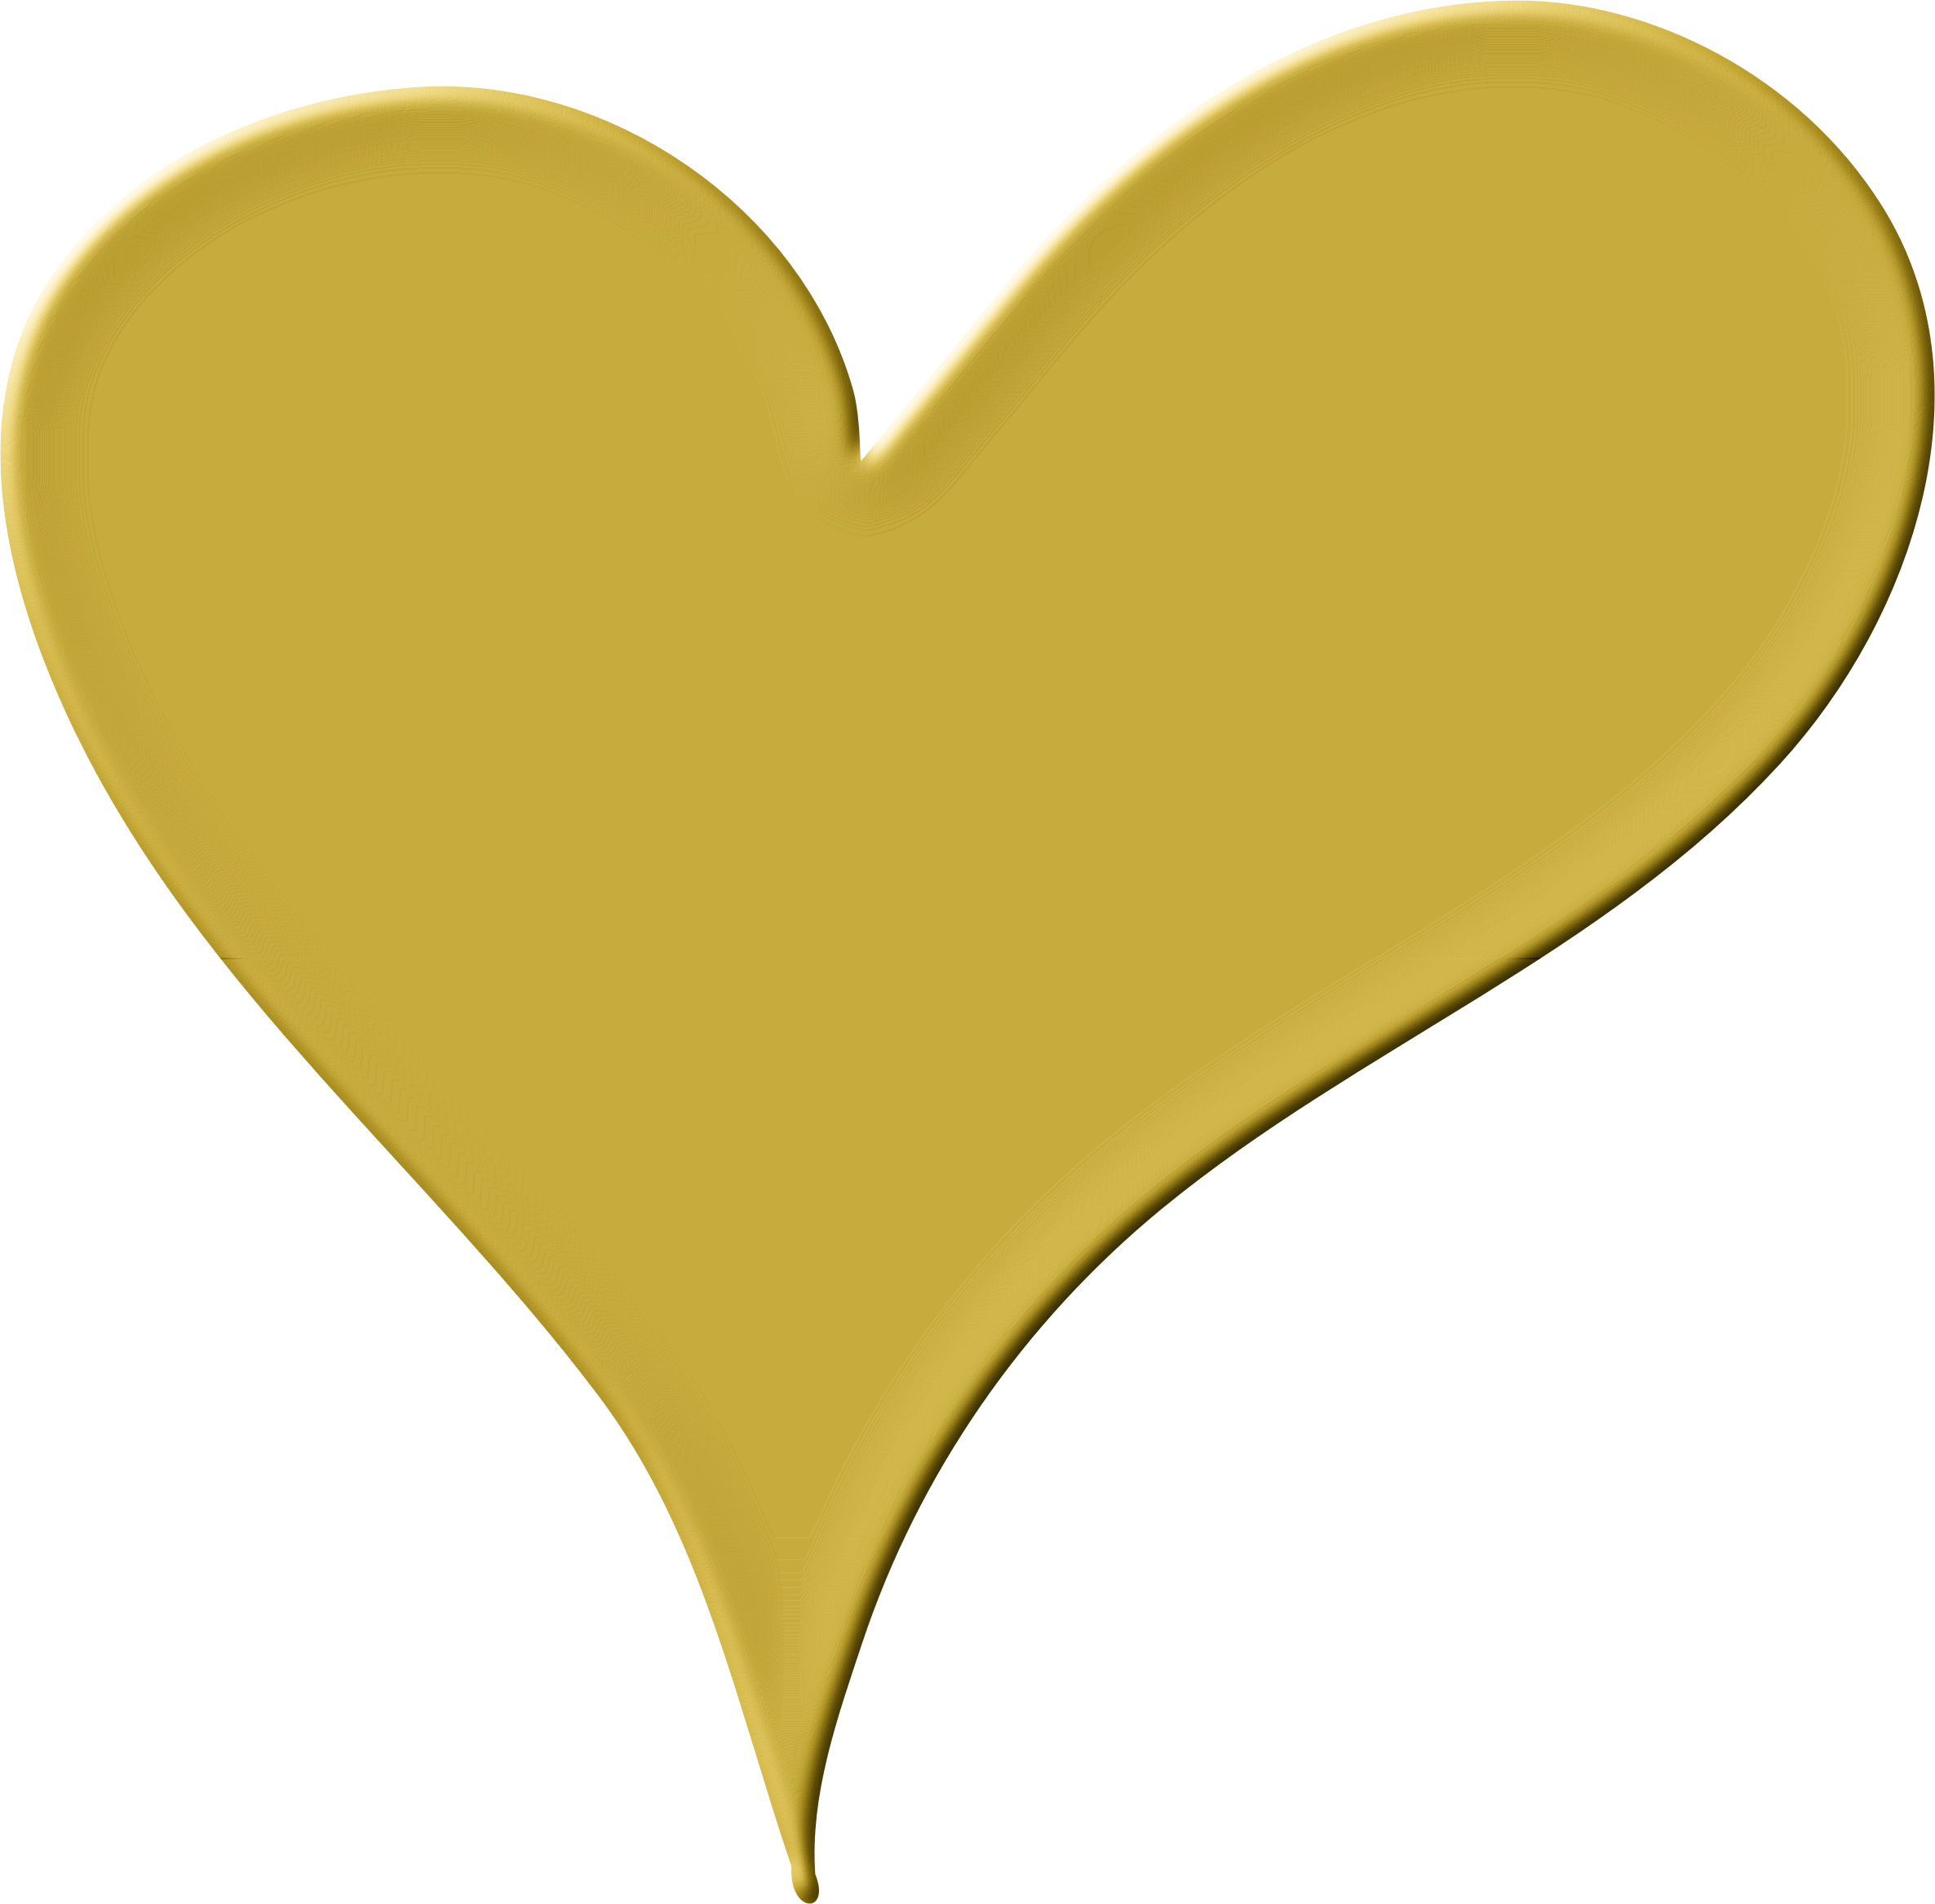 Yellow heart balloon clipart picture library download Yellow Heart Clipart | Free download best Yellow Heart Clipart on ... picture library download